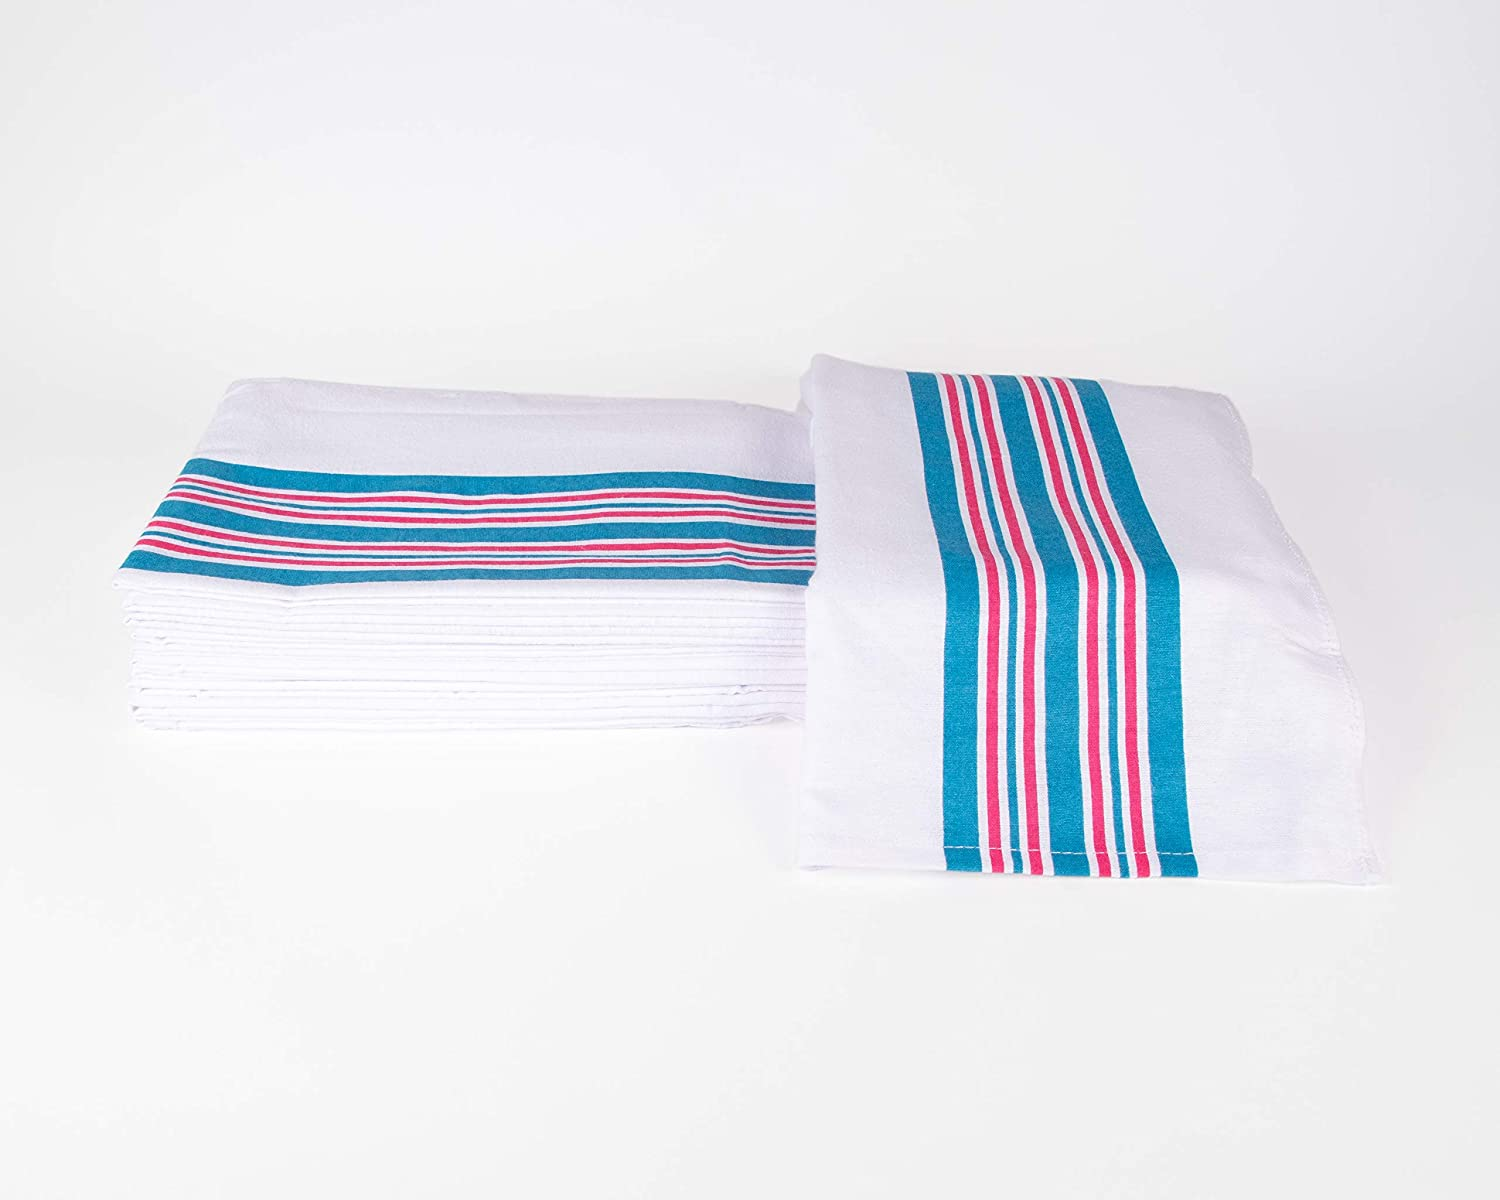 Infant Receiving Swaddling Hospital Blankets 30/'/'x40/'/' 100/% Cotton 12 NEW Baby